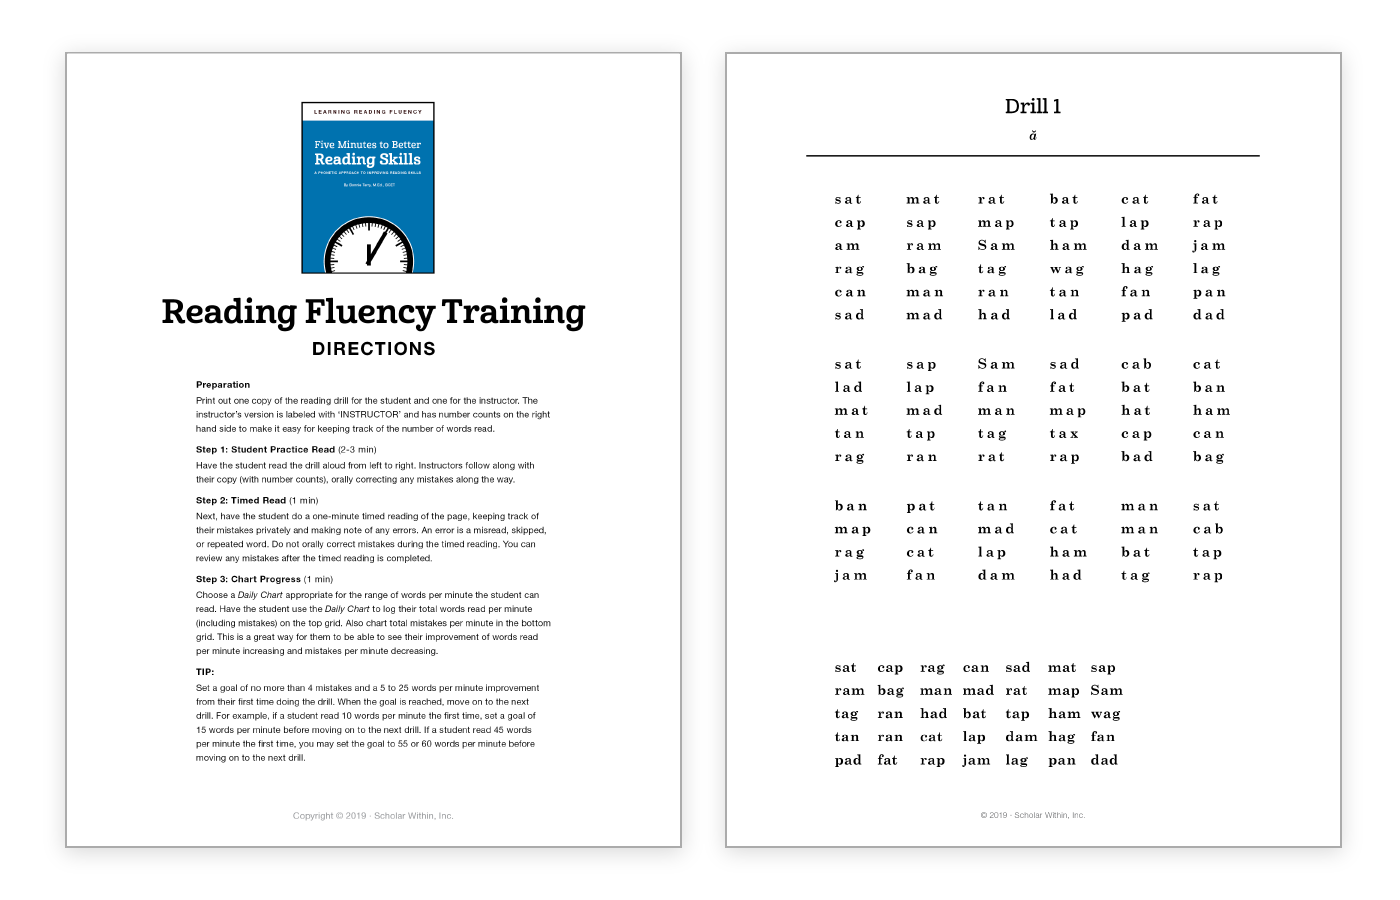 Reading Fluency Activity - Free Download - Training Drill